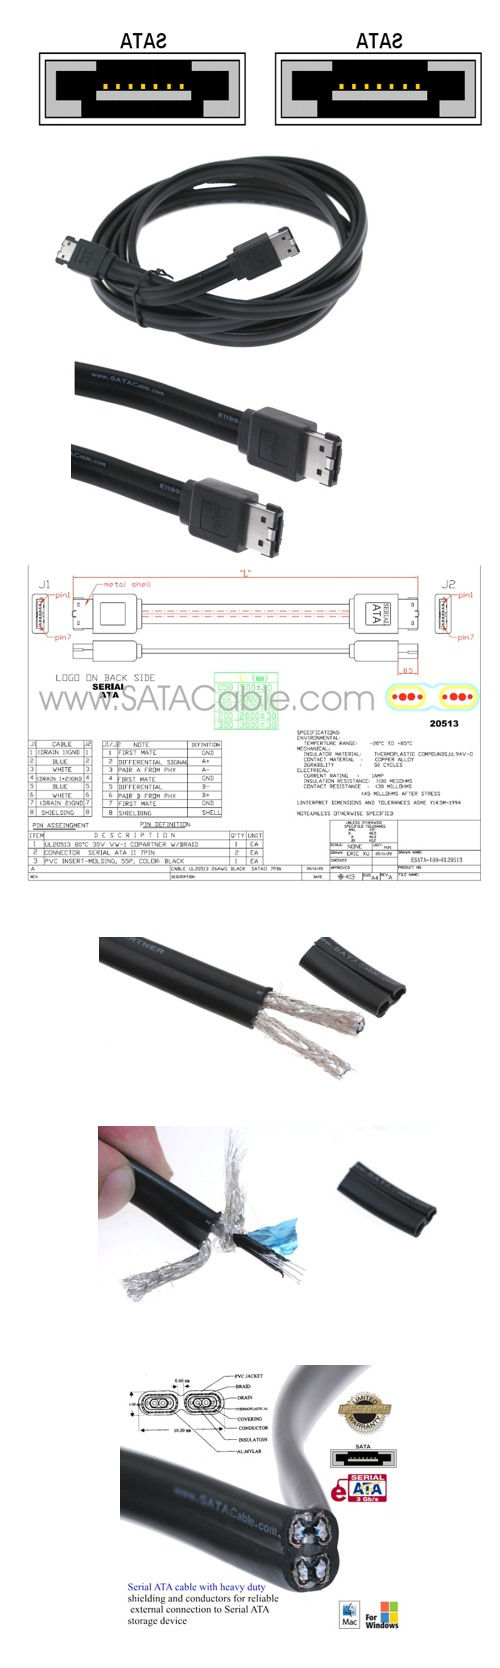 One Meter (3ft.) eSATA - eSATA External Triple Shielded SATA Cable - Image C